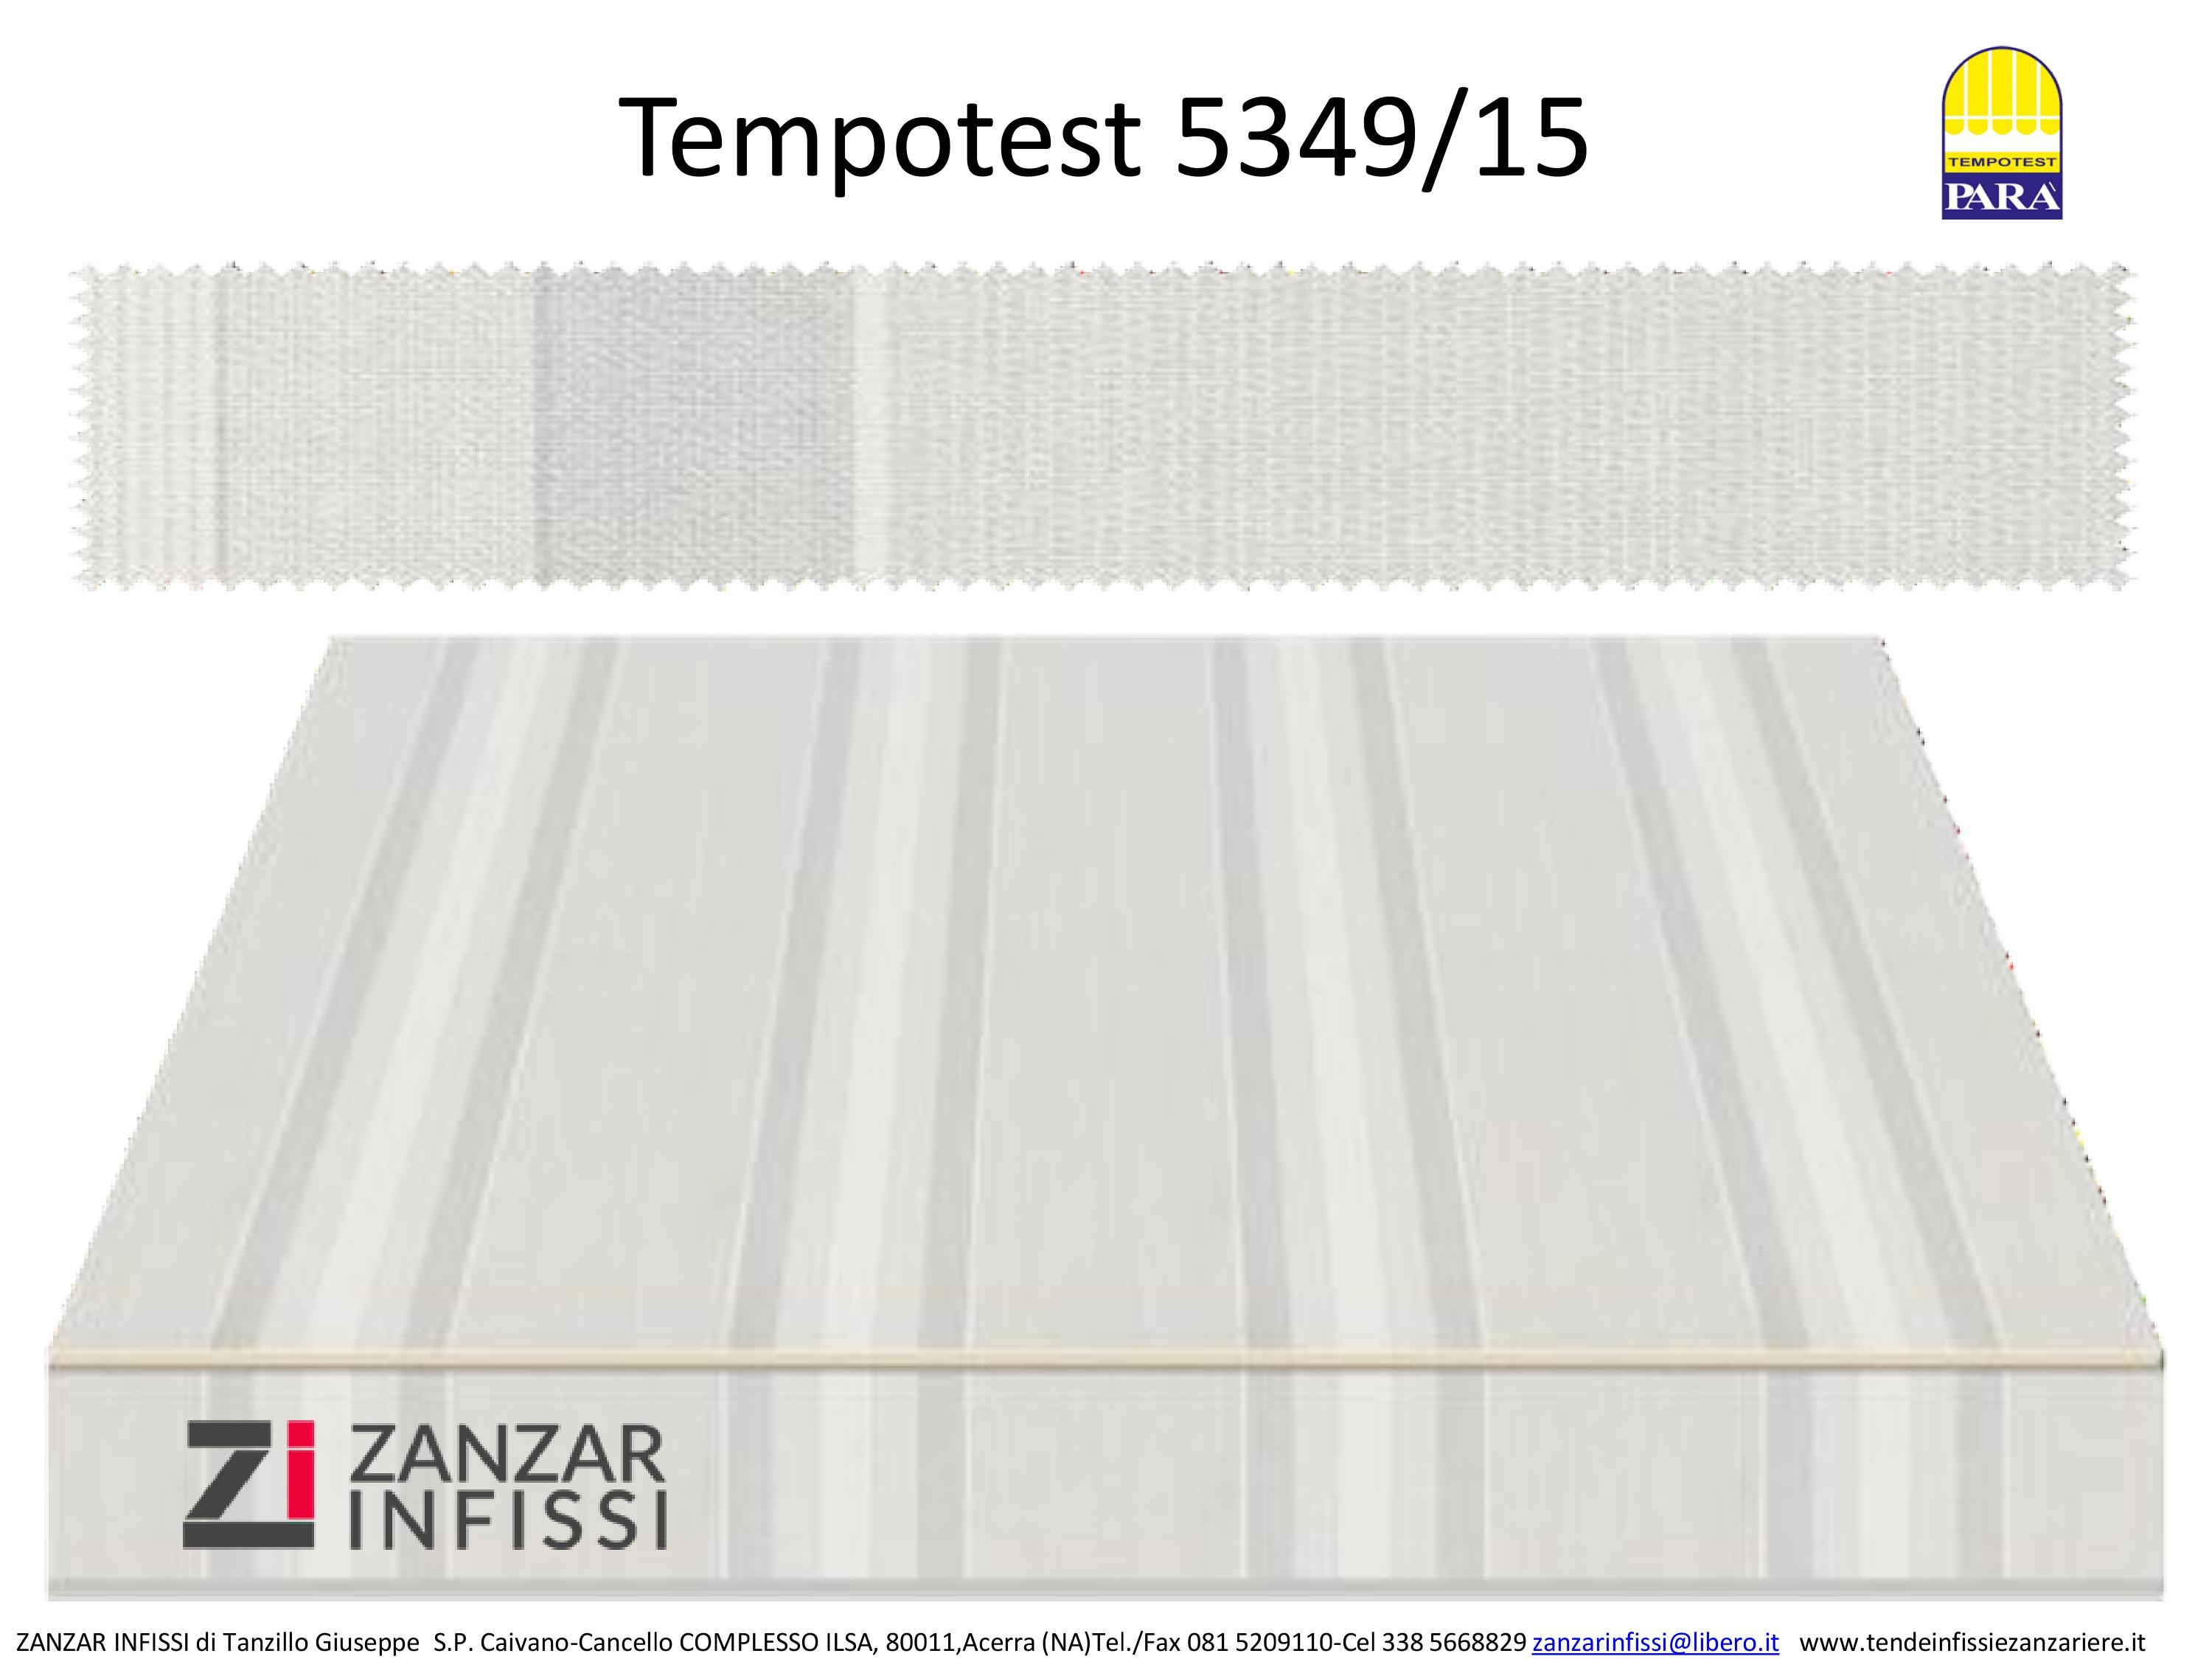 Tempotest 5349/15